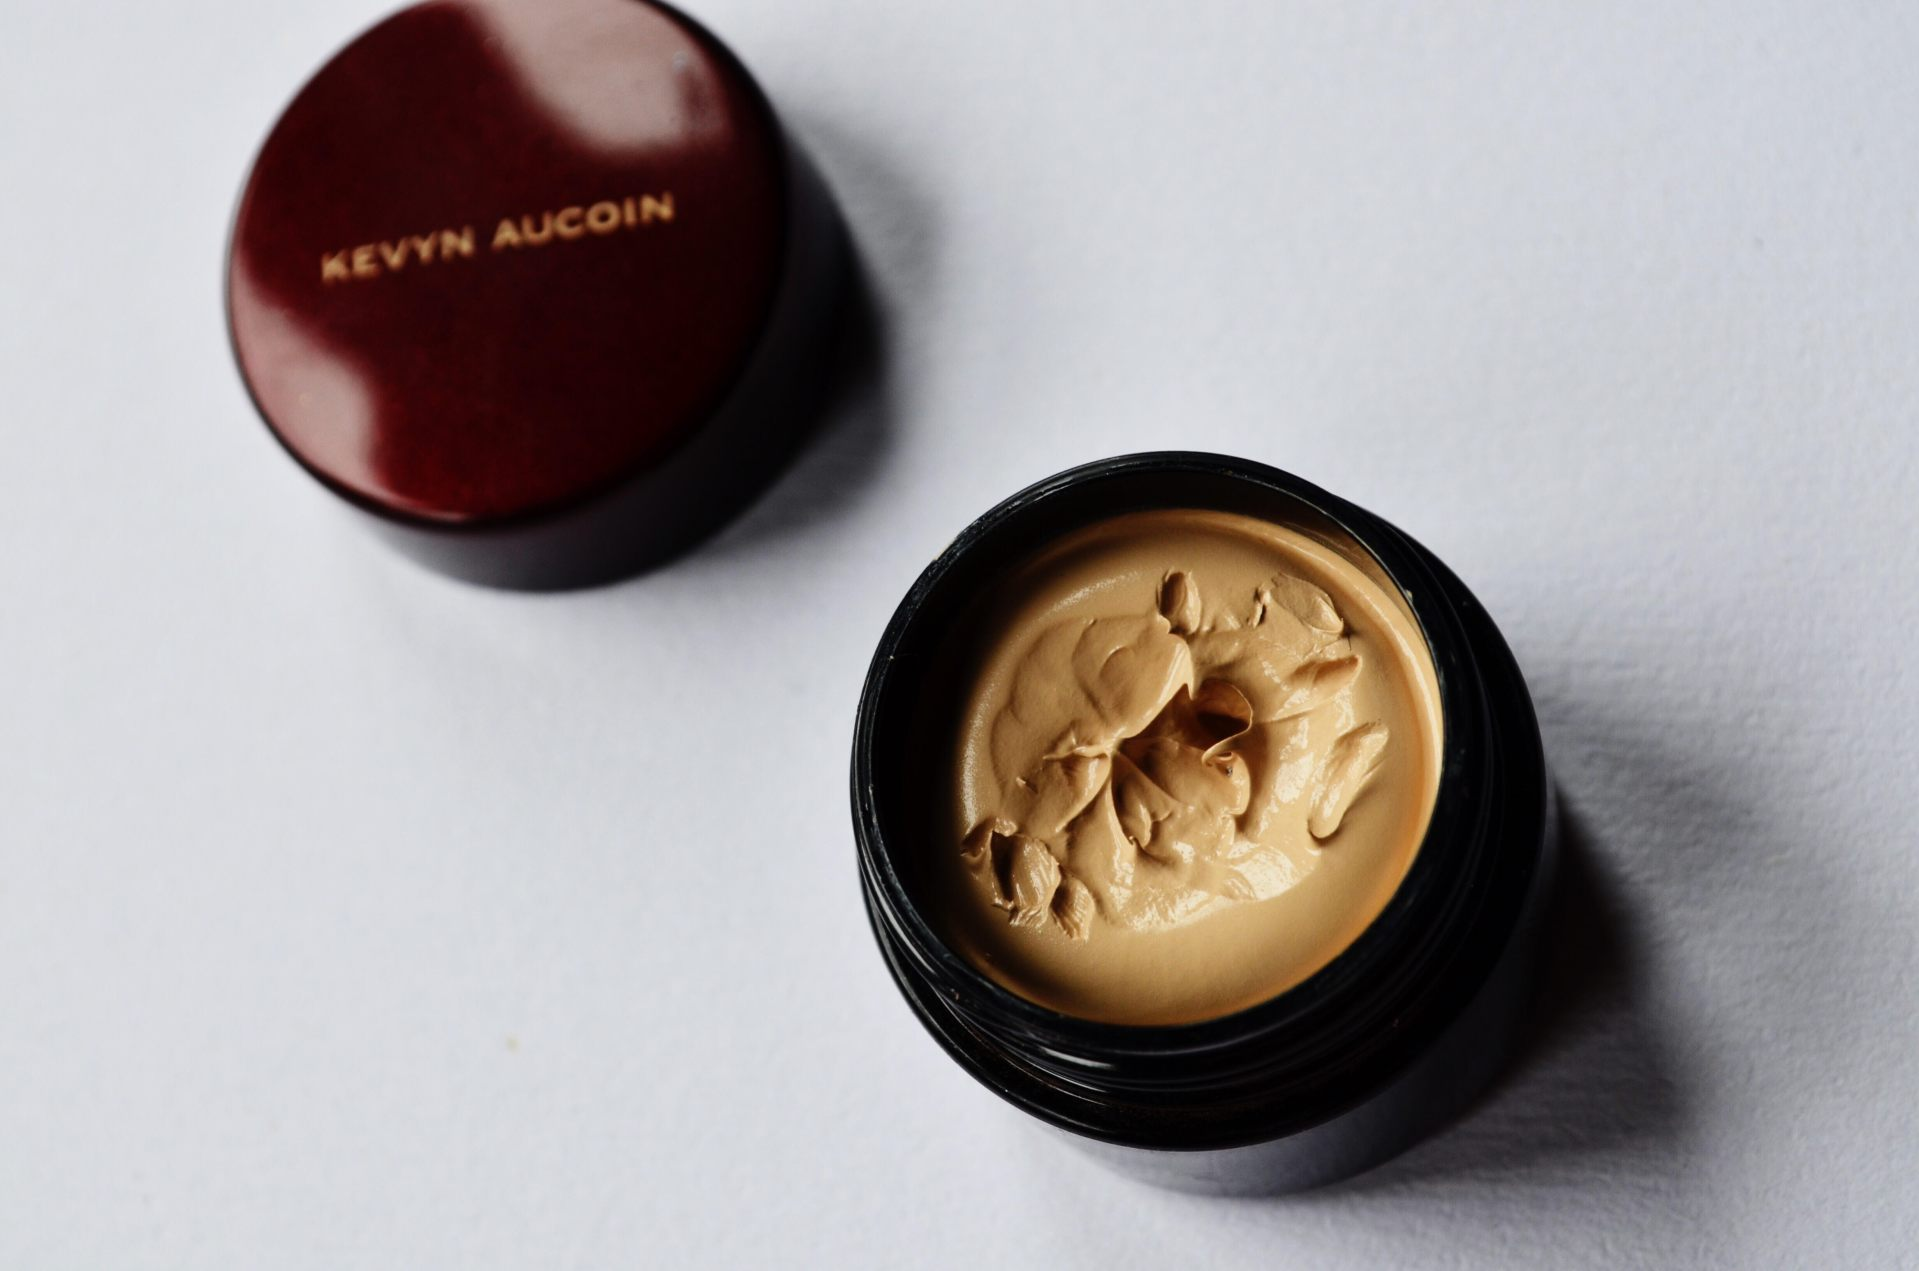 kevyn-aucoin-sensual-skin-enhancer-review-blush-london-beauty-blog